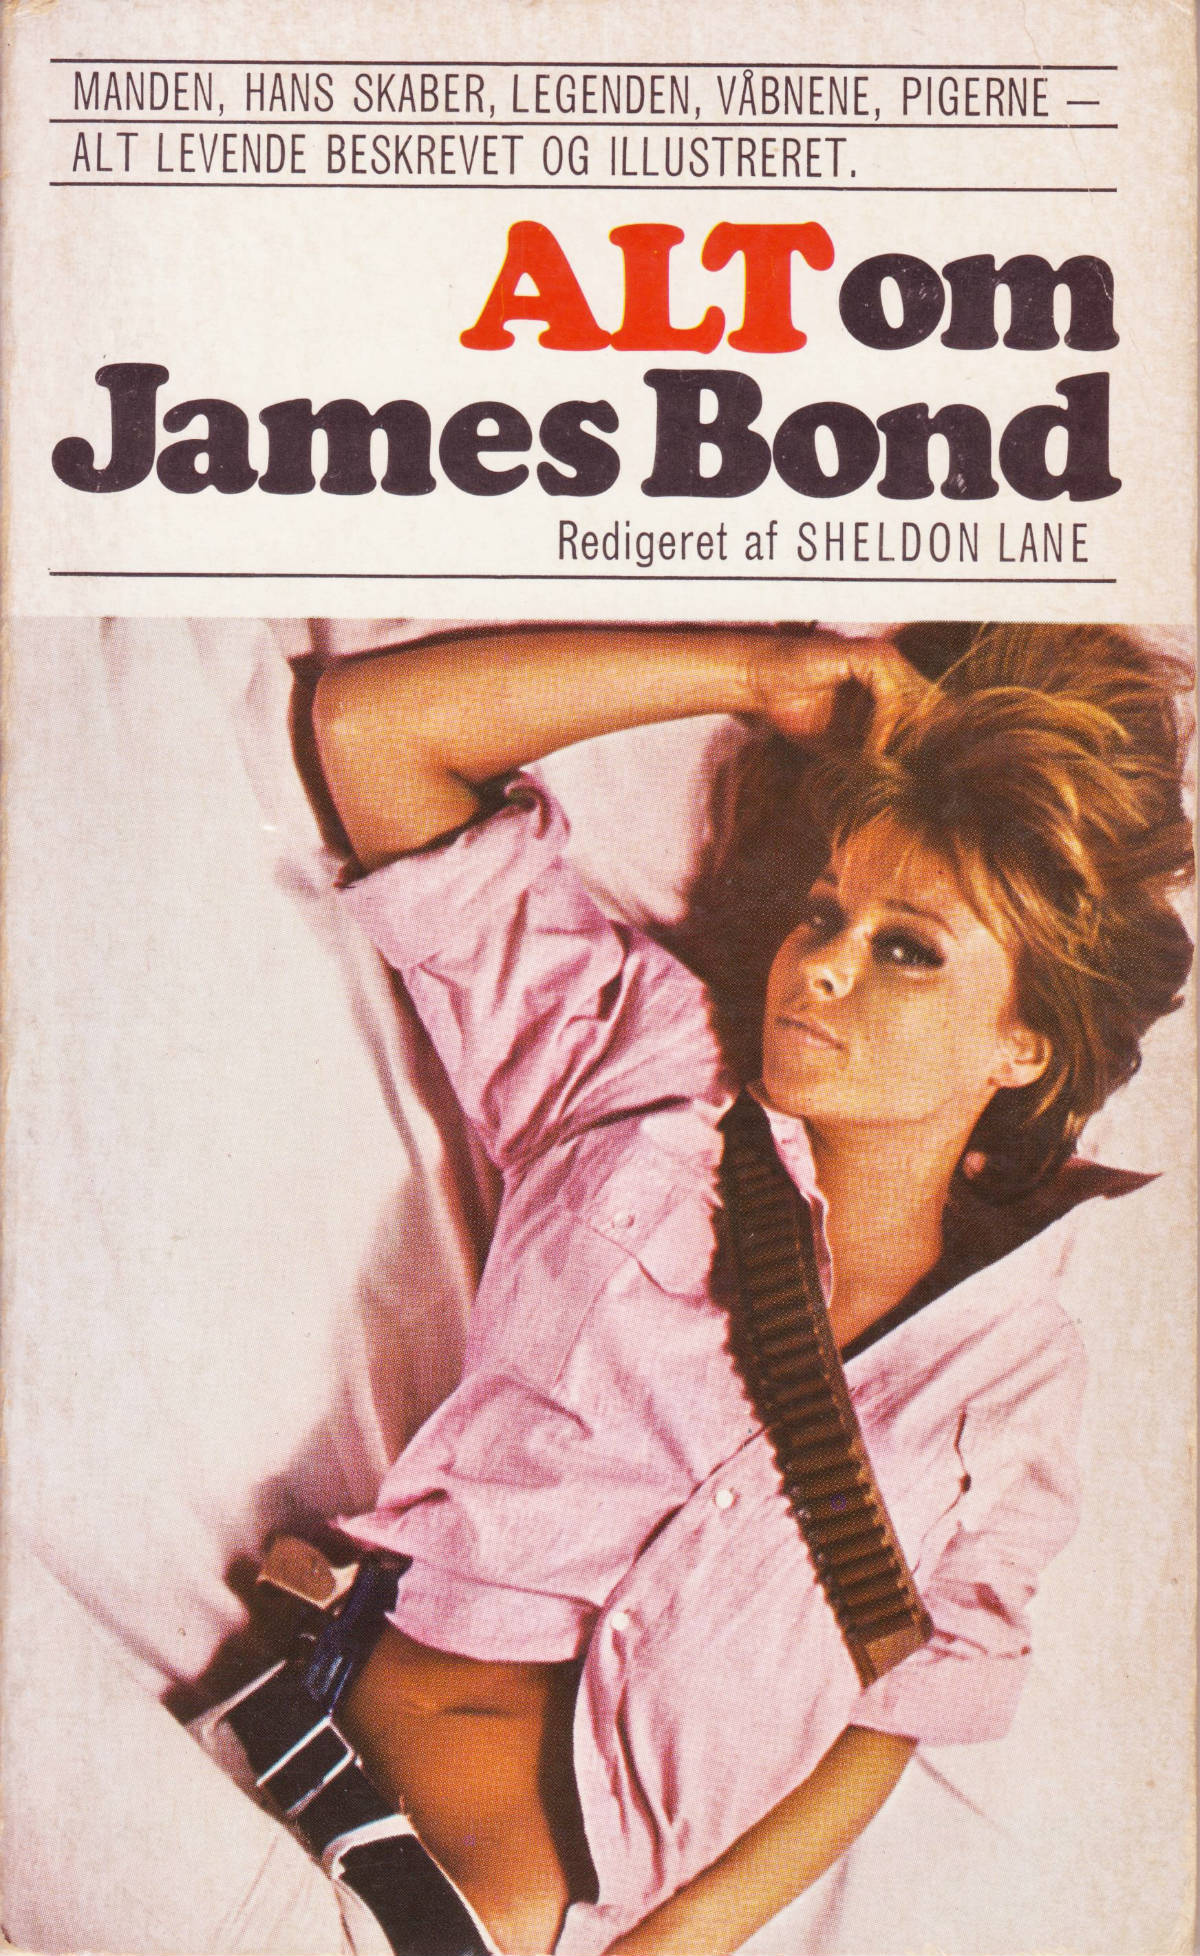 """Alt om James Bond"" (1967): Danish front cover"